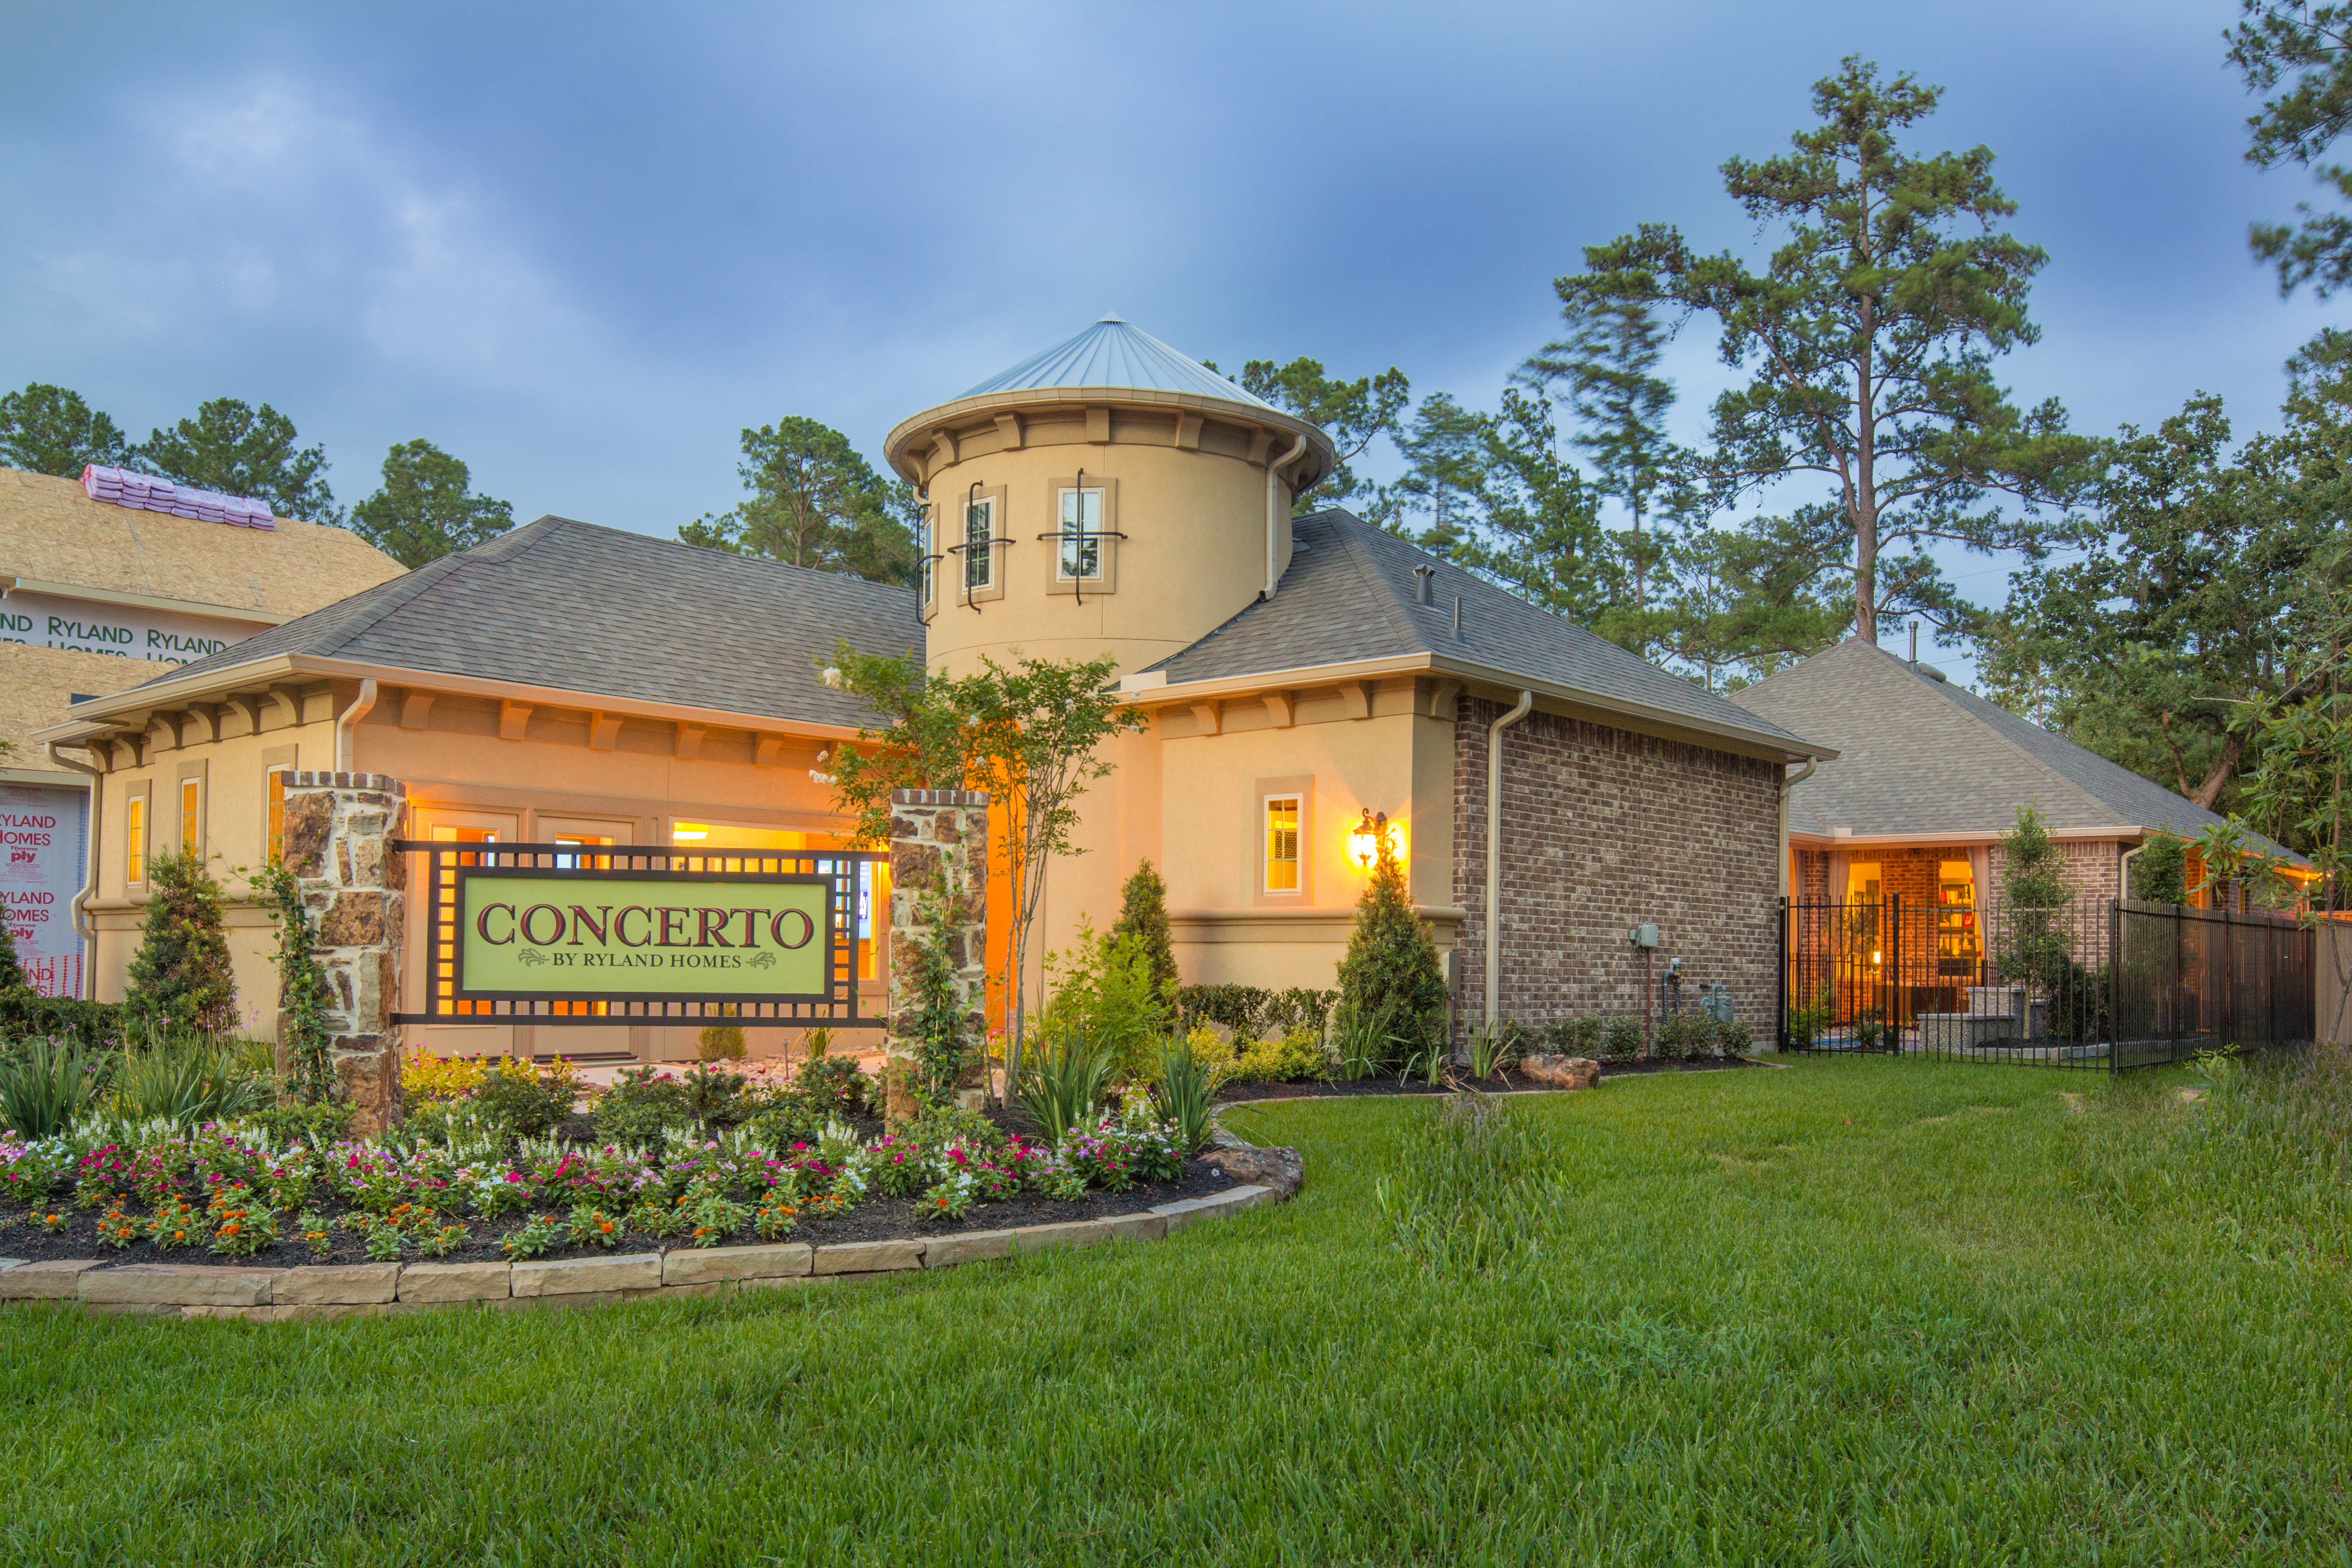 Lovely Ryland Homes Introduces A New Home Series U2013 The Woodlands Concerto  Courtyard | Business Wire